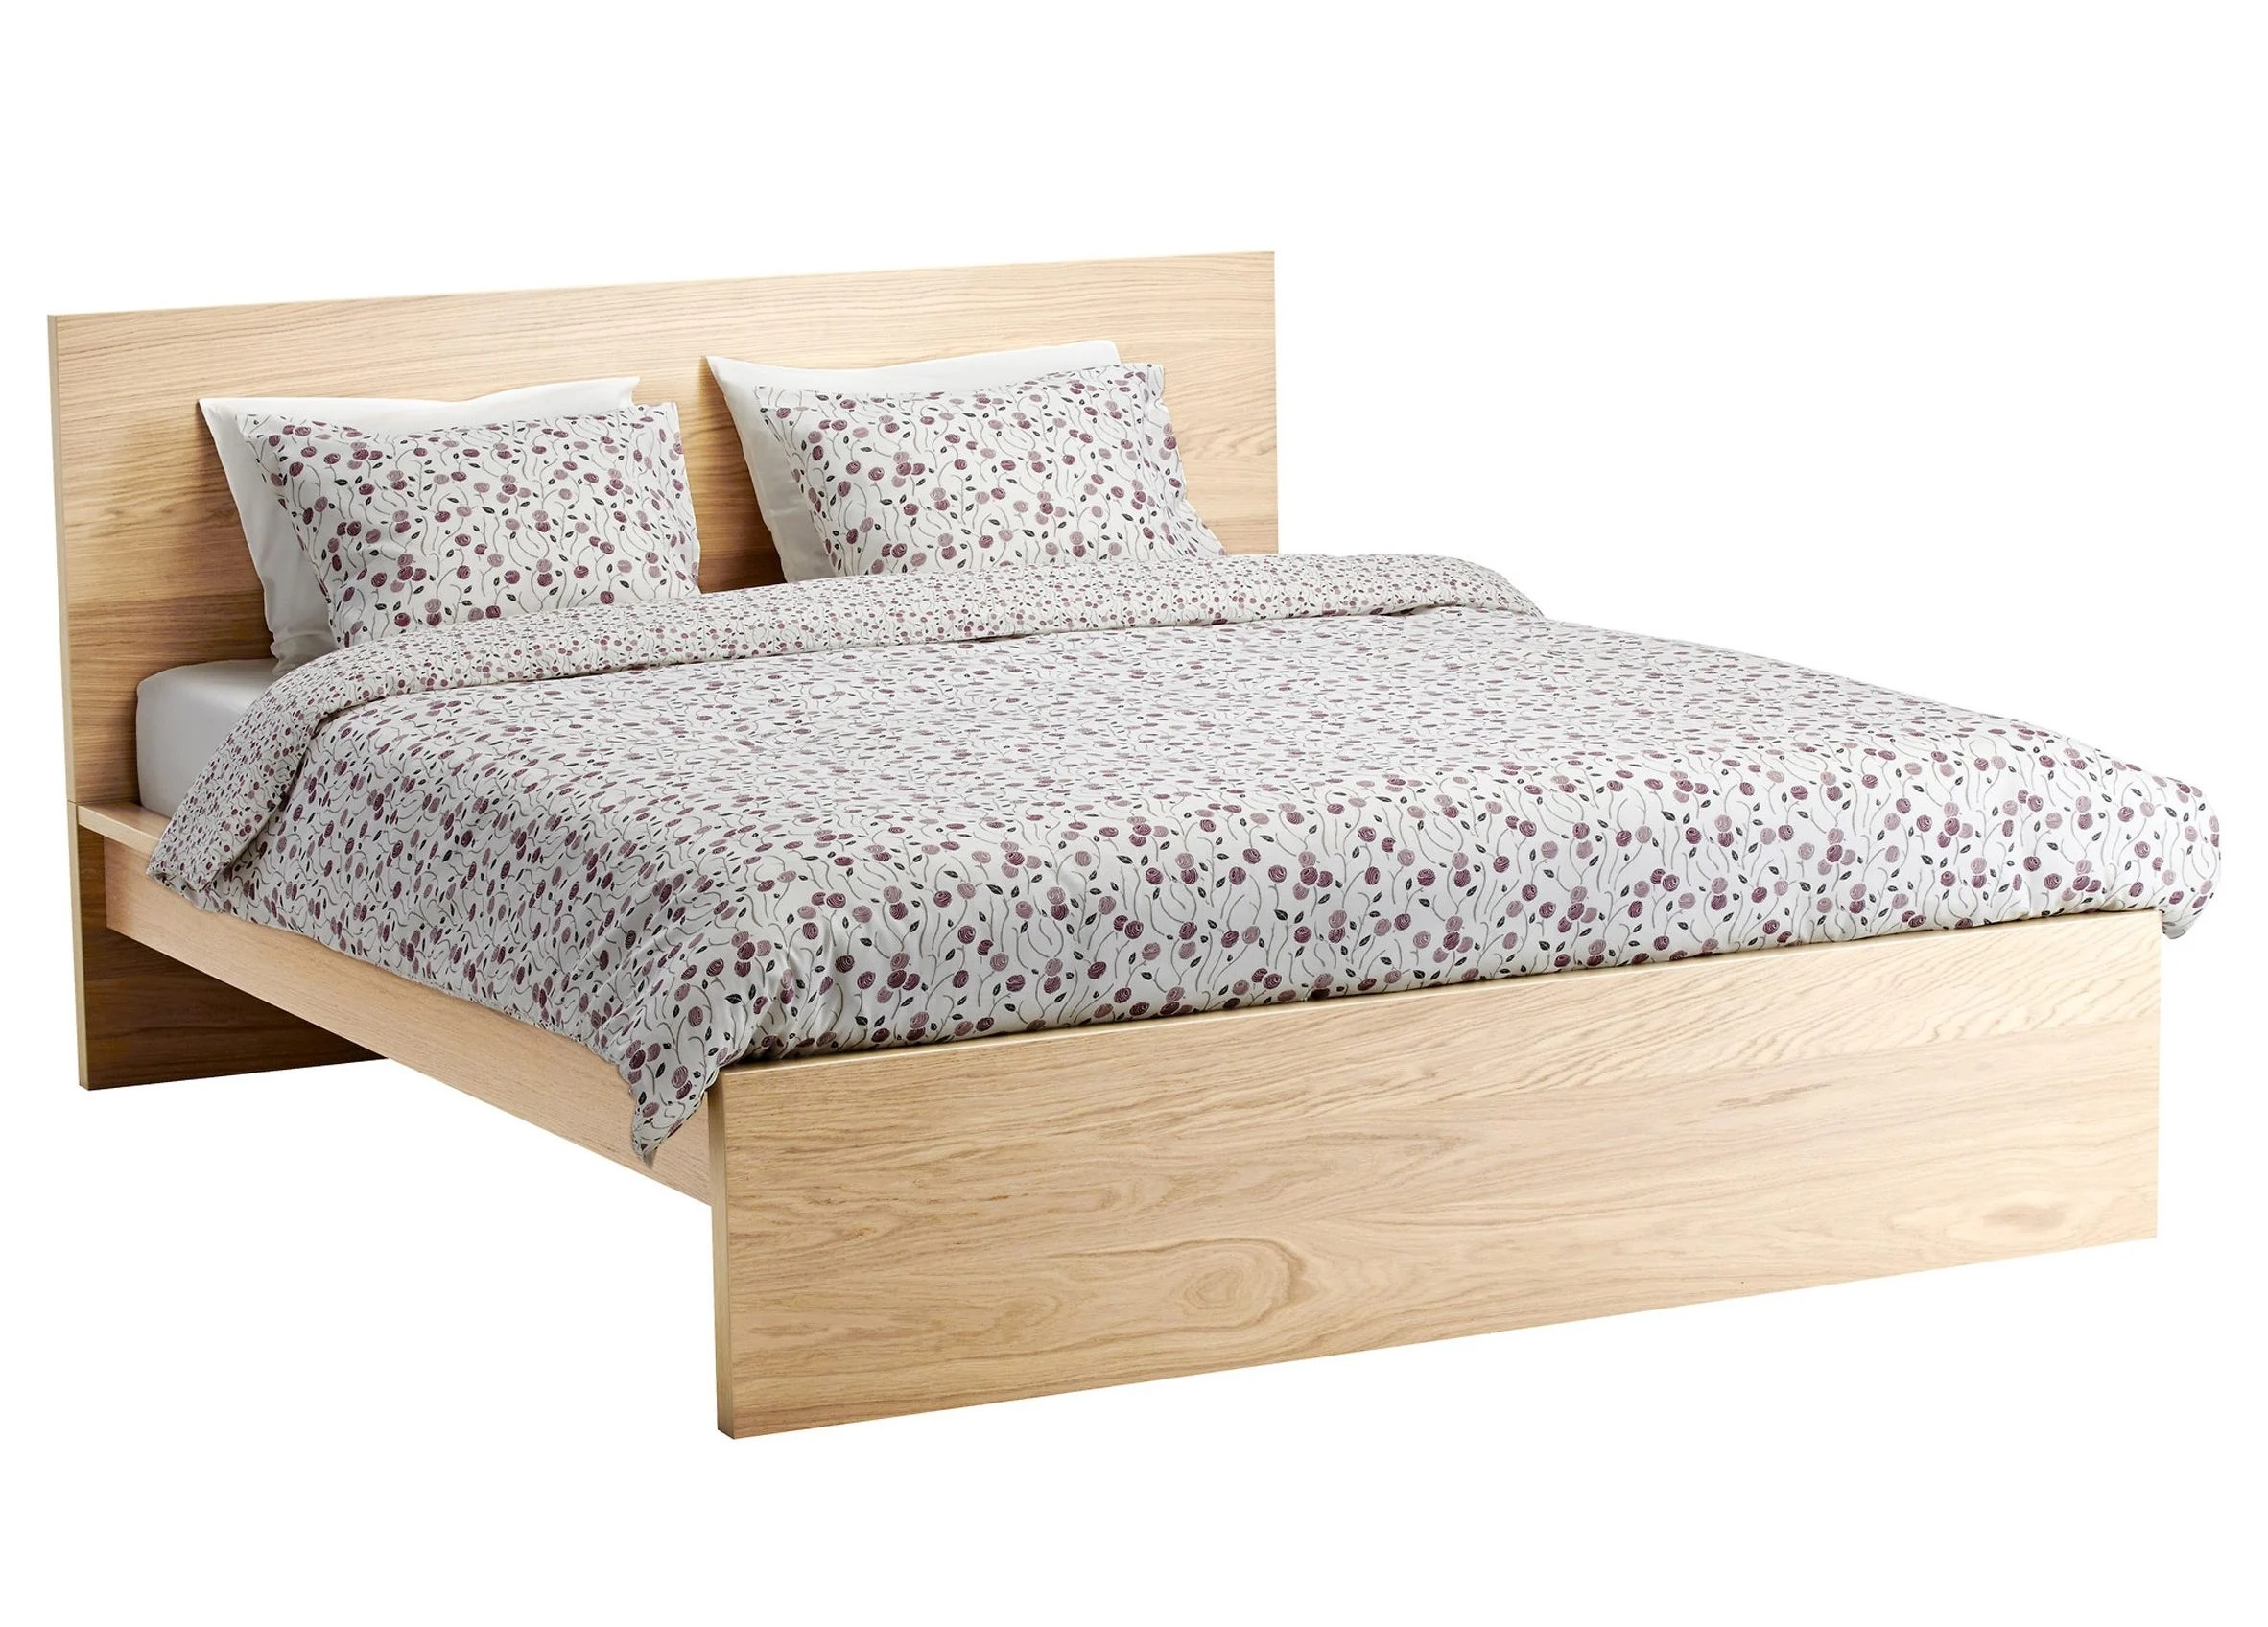 Ikea Malm Bed Bestselling Ikea Bed Infringes Design Right Claims E15